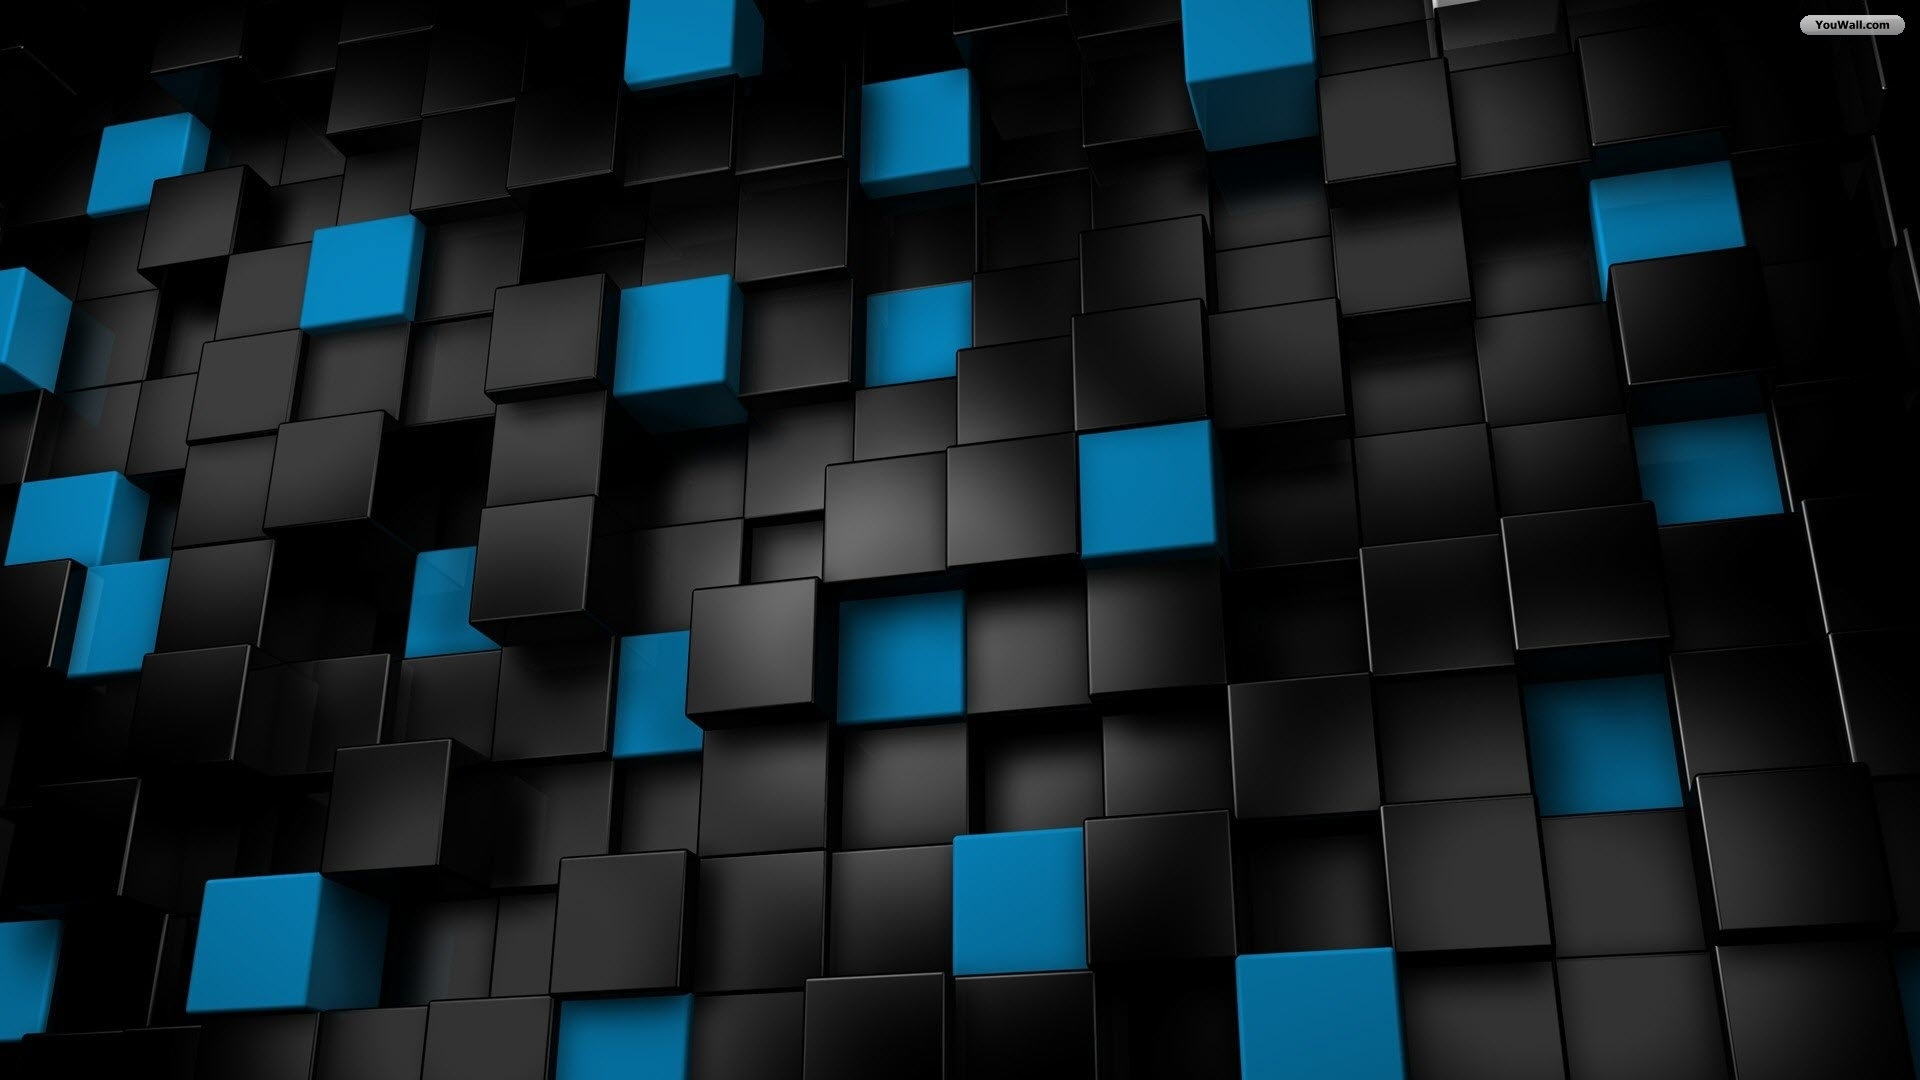 black-and-blue-cubes-wallpaper : free download, borrow, and